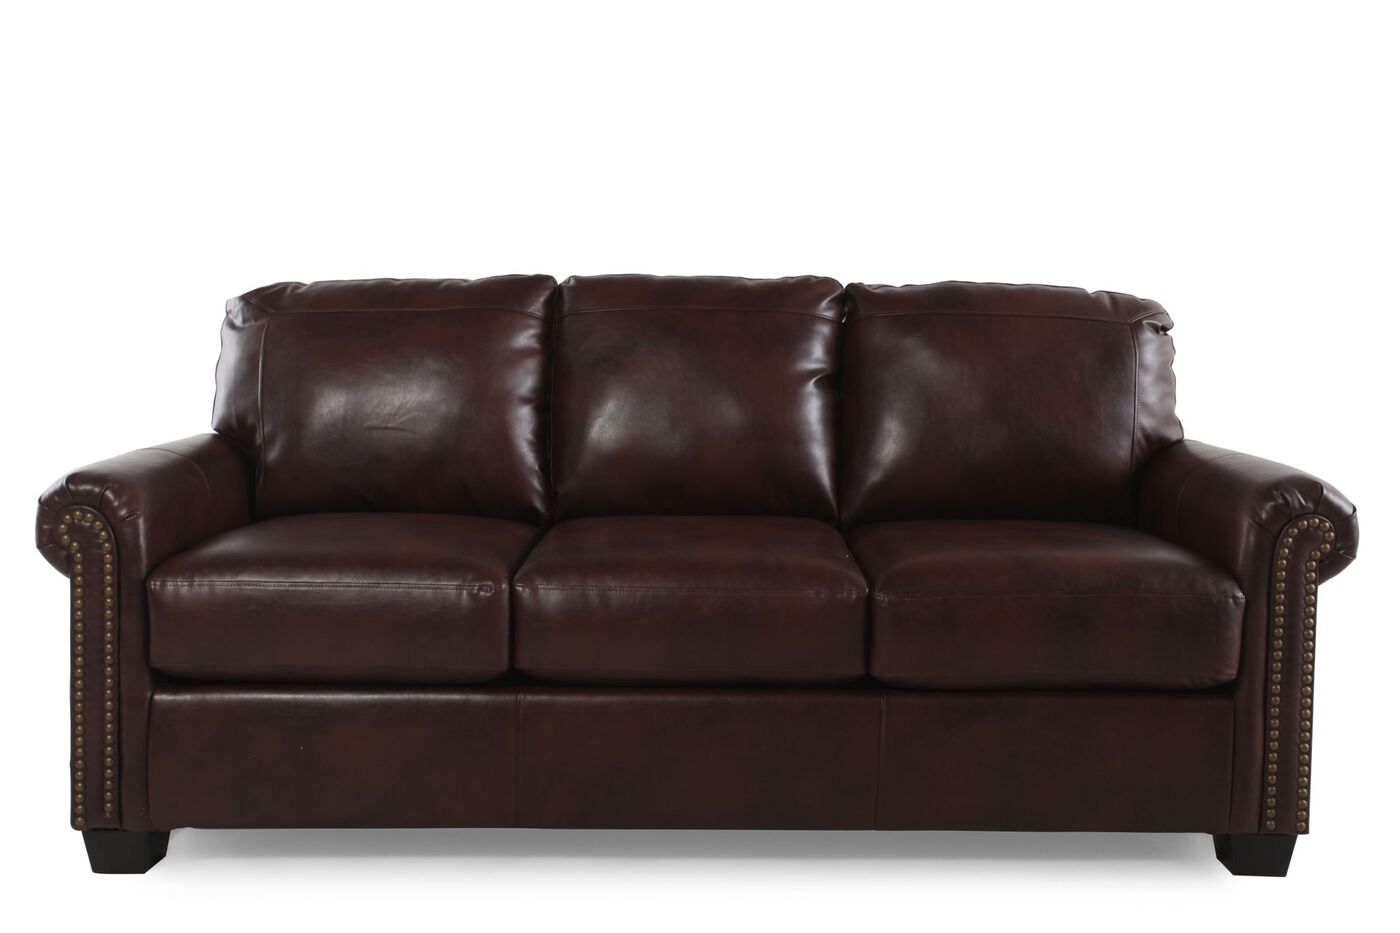 Mathis Brothers Leather Sleeper Sofa Refil Sofa : ASH 3800039 from forexrefiller.com size 1400 x 933 jpeg 57kB